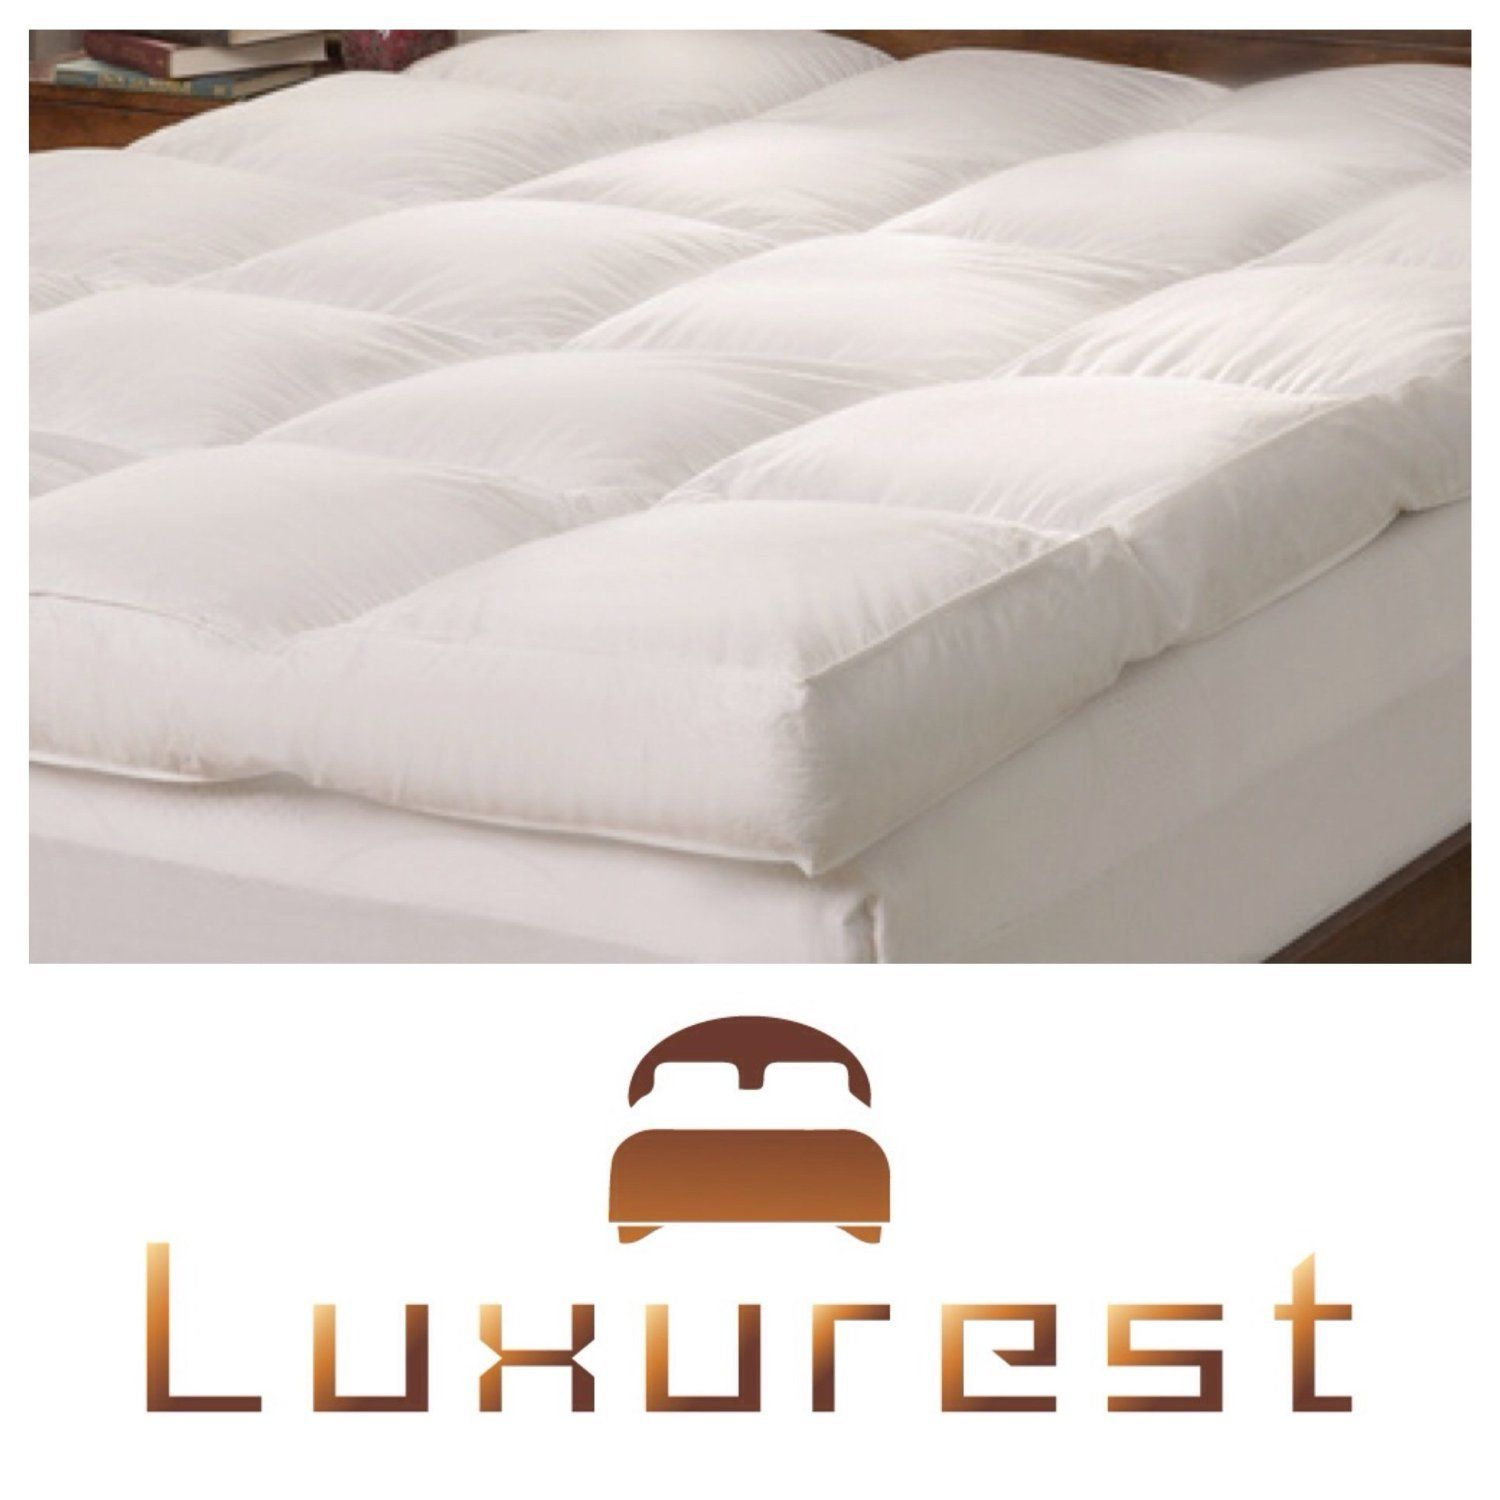 5 Inch Mattress Topper Feather Bed Pillow Top Mattress Topper 5 Inch Free Cover